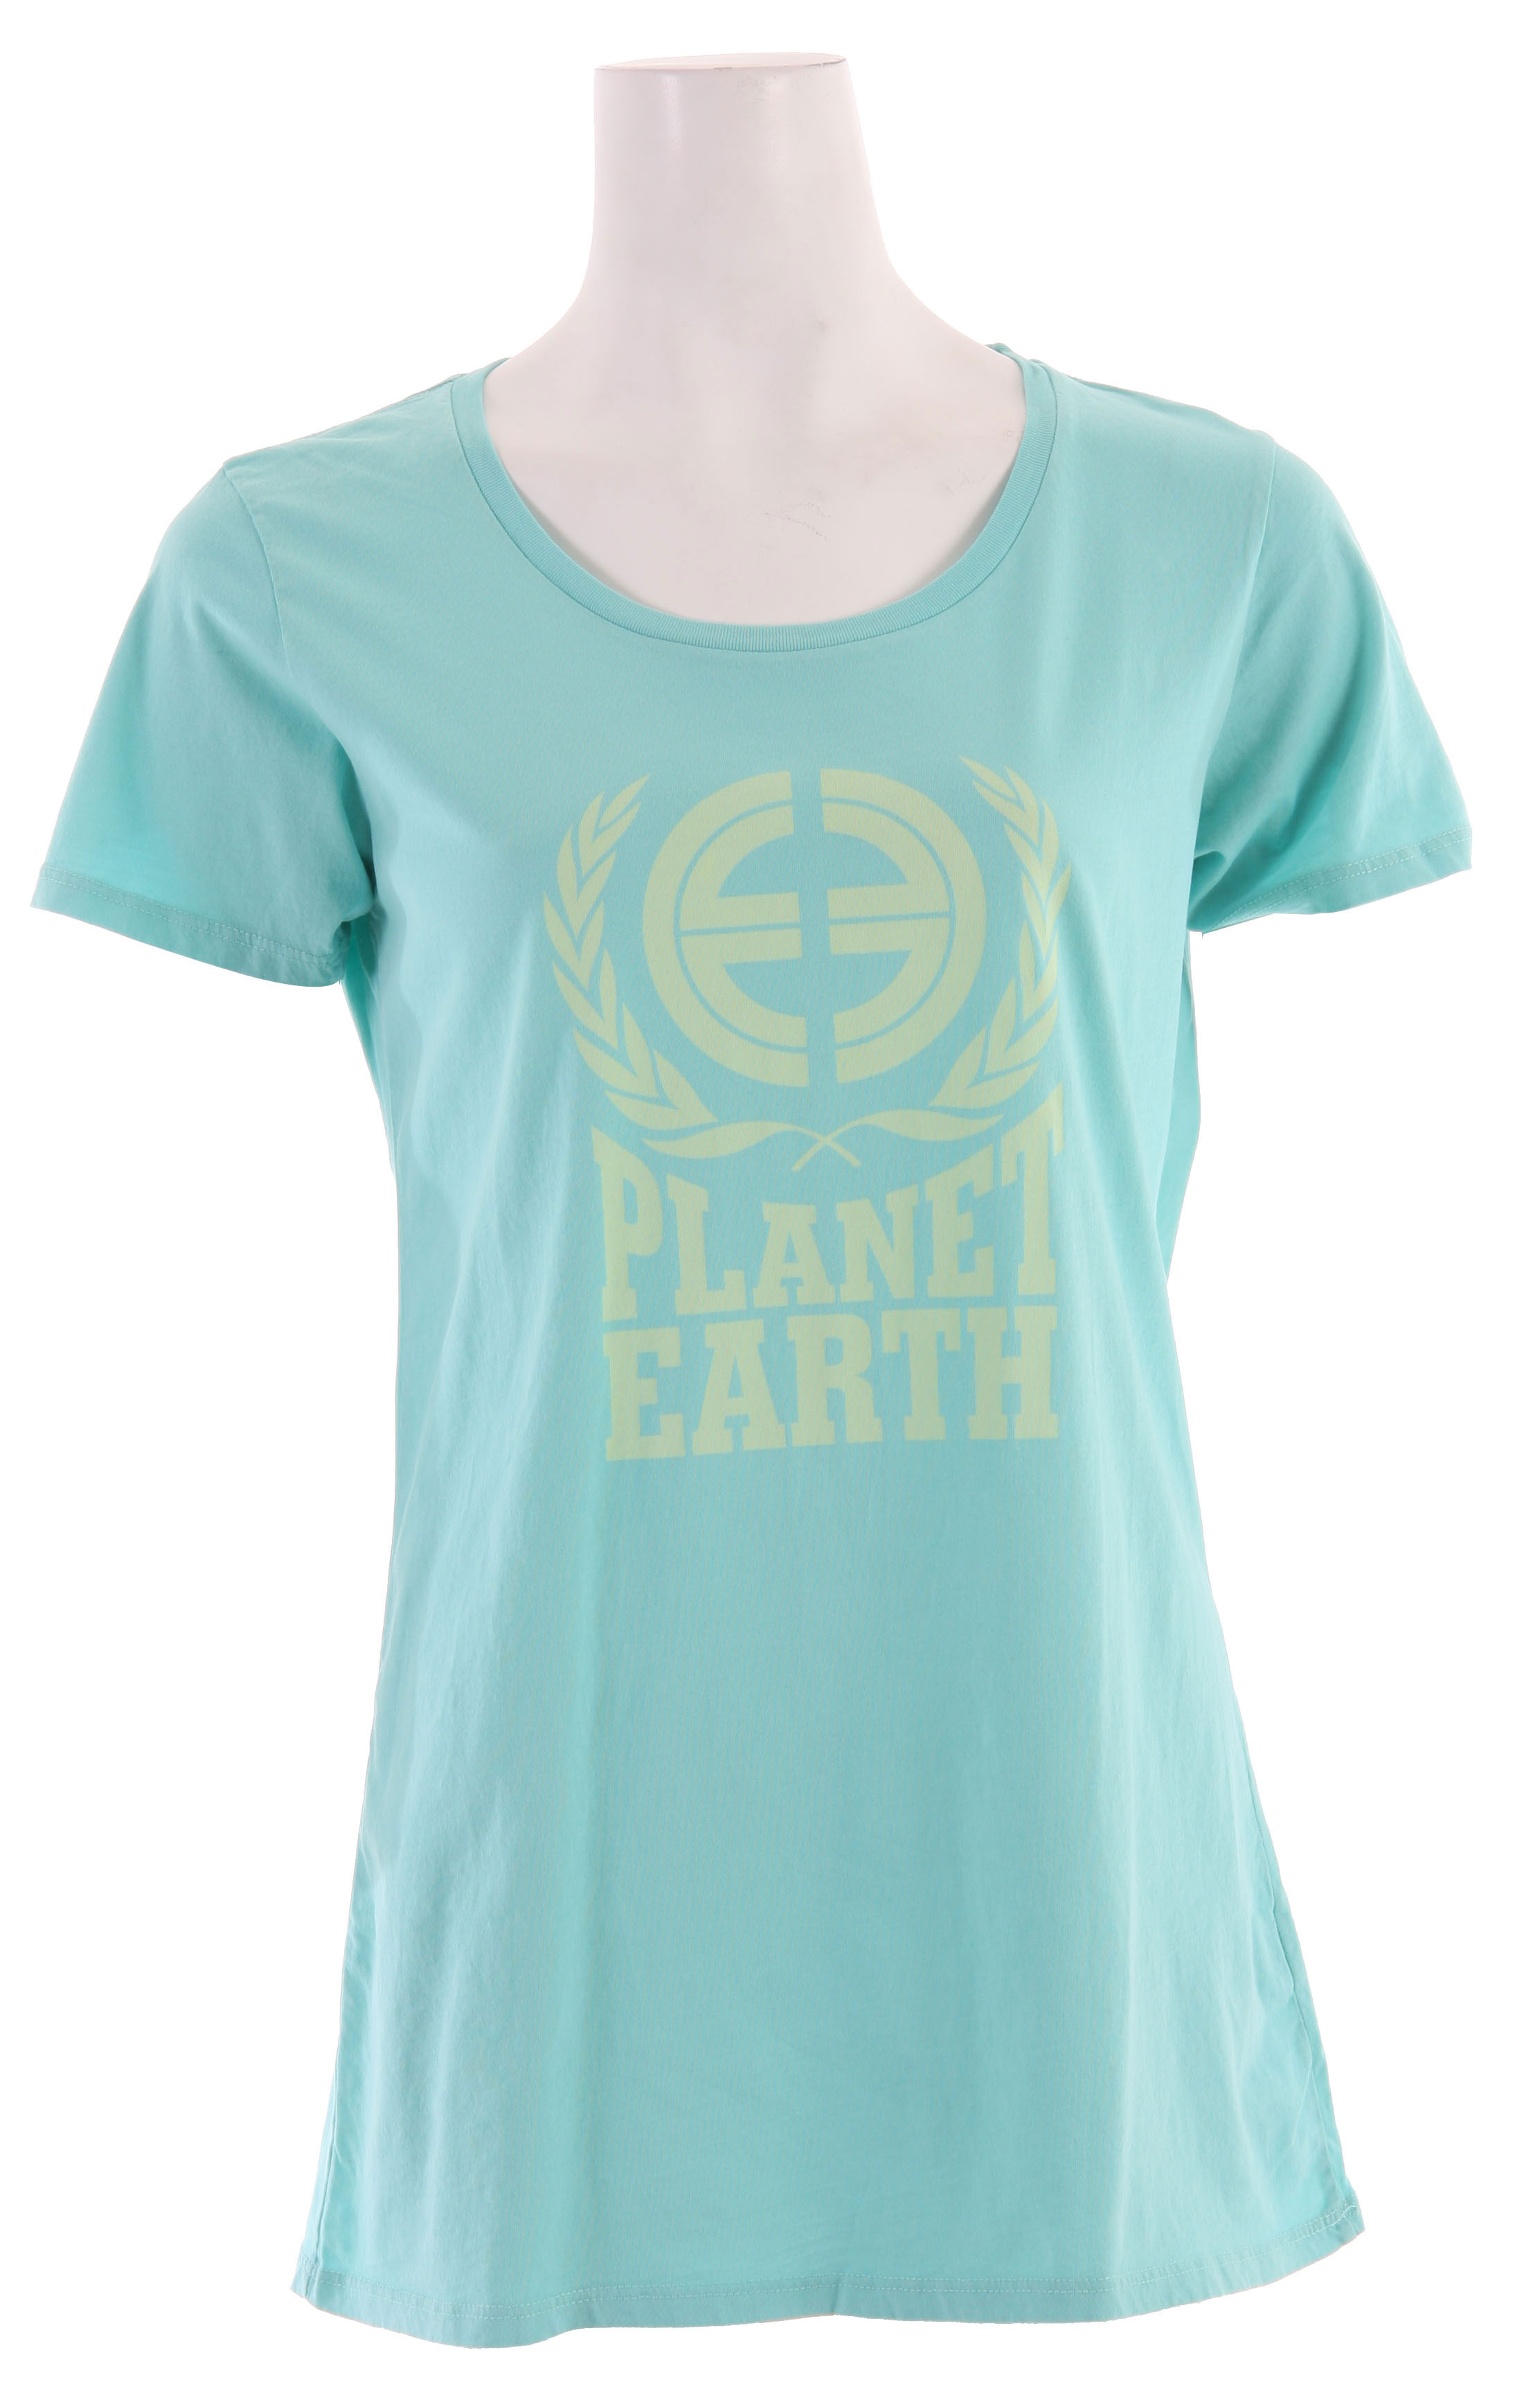 Key Features of The Planet Earth Baker S/S T-Shirt: Regular Fit Crew Neck Short Sleeve Renewable or recycled materials in every piece - $13.95